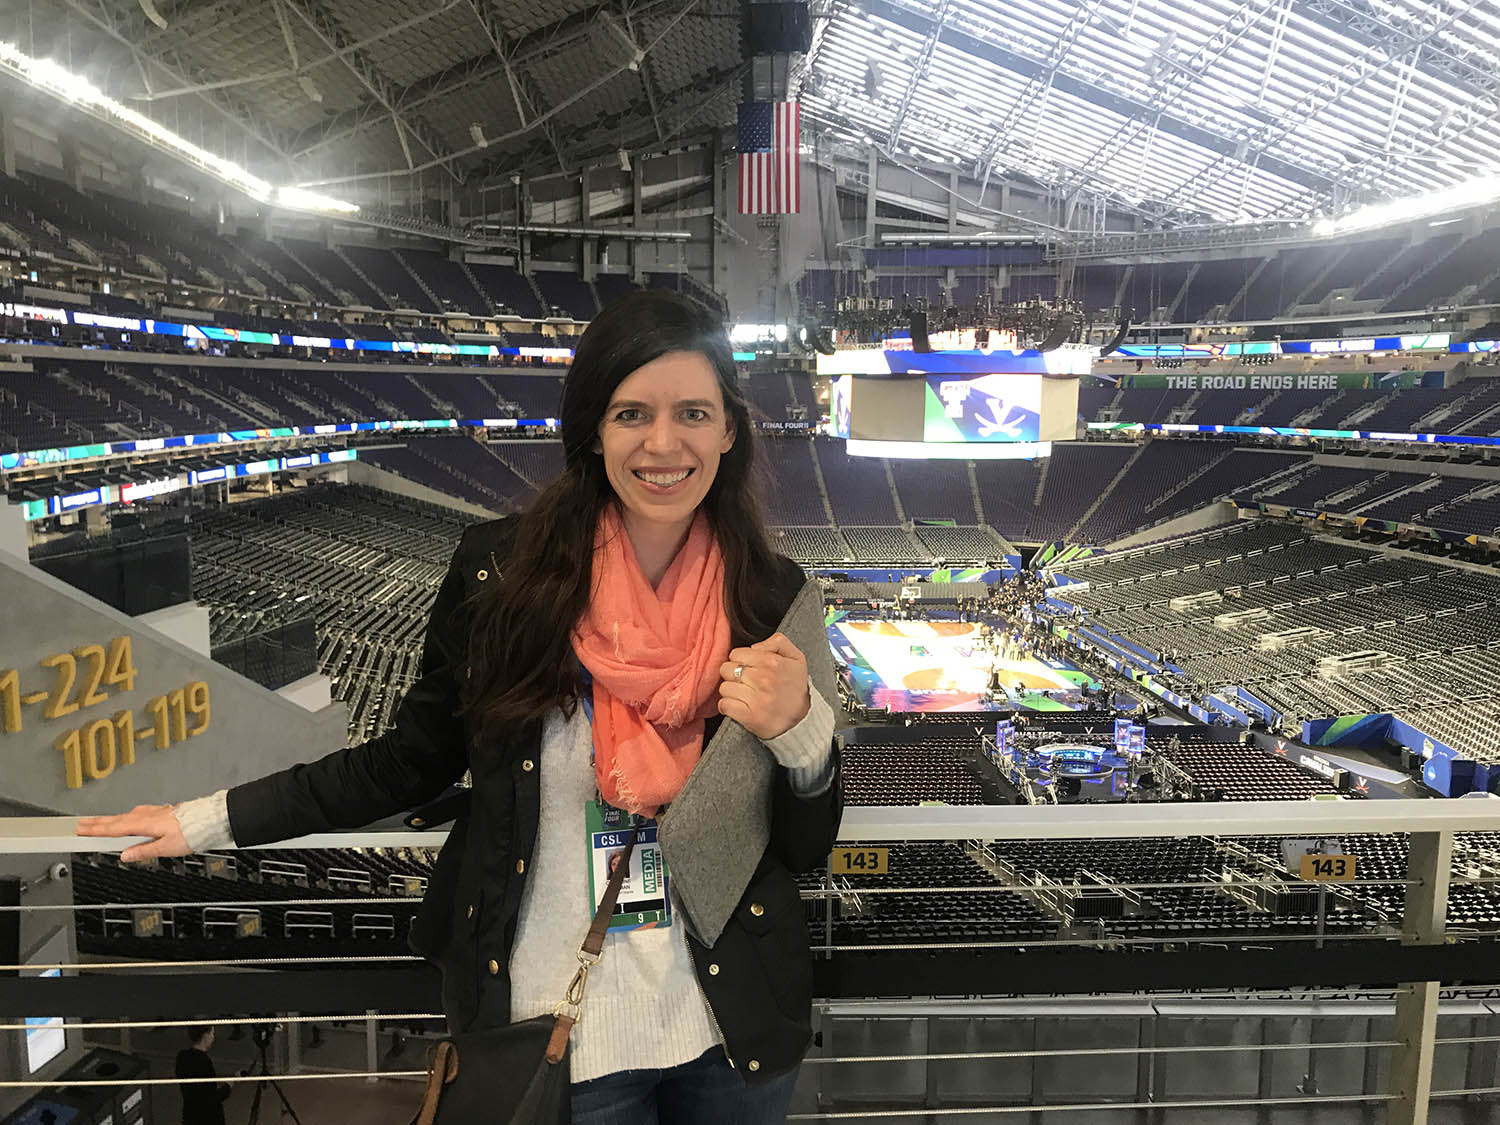 Newman, a UVA alumna who never envisioned herself as a sports writer, nonetheless managed to cover both the Final Four and the Orange Bowl in a magical year for Cavalier athletics.